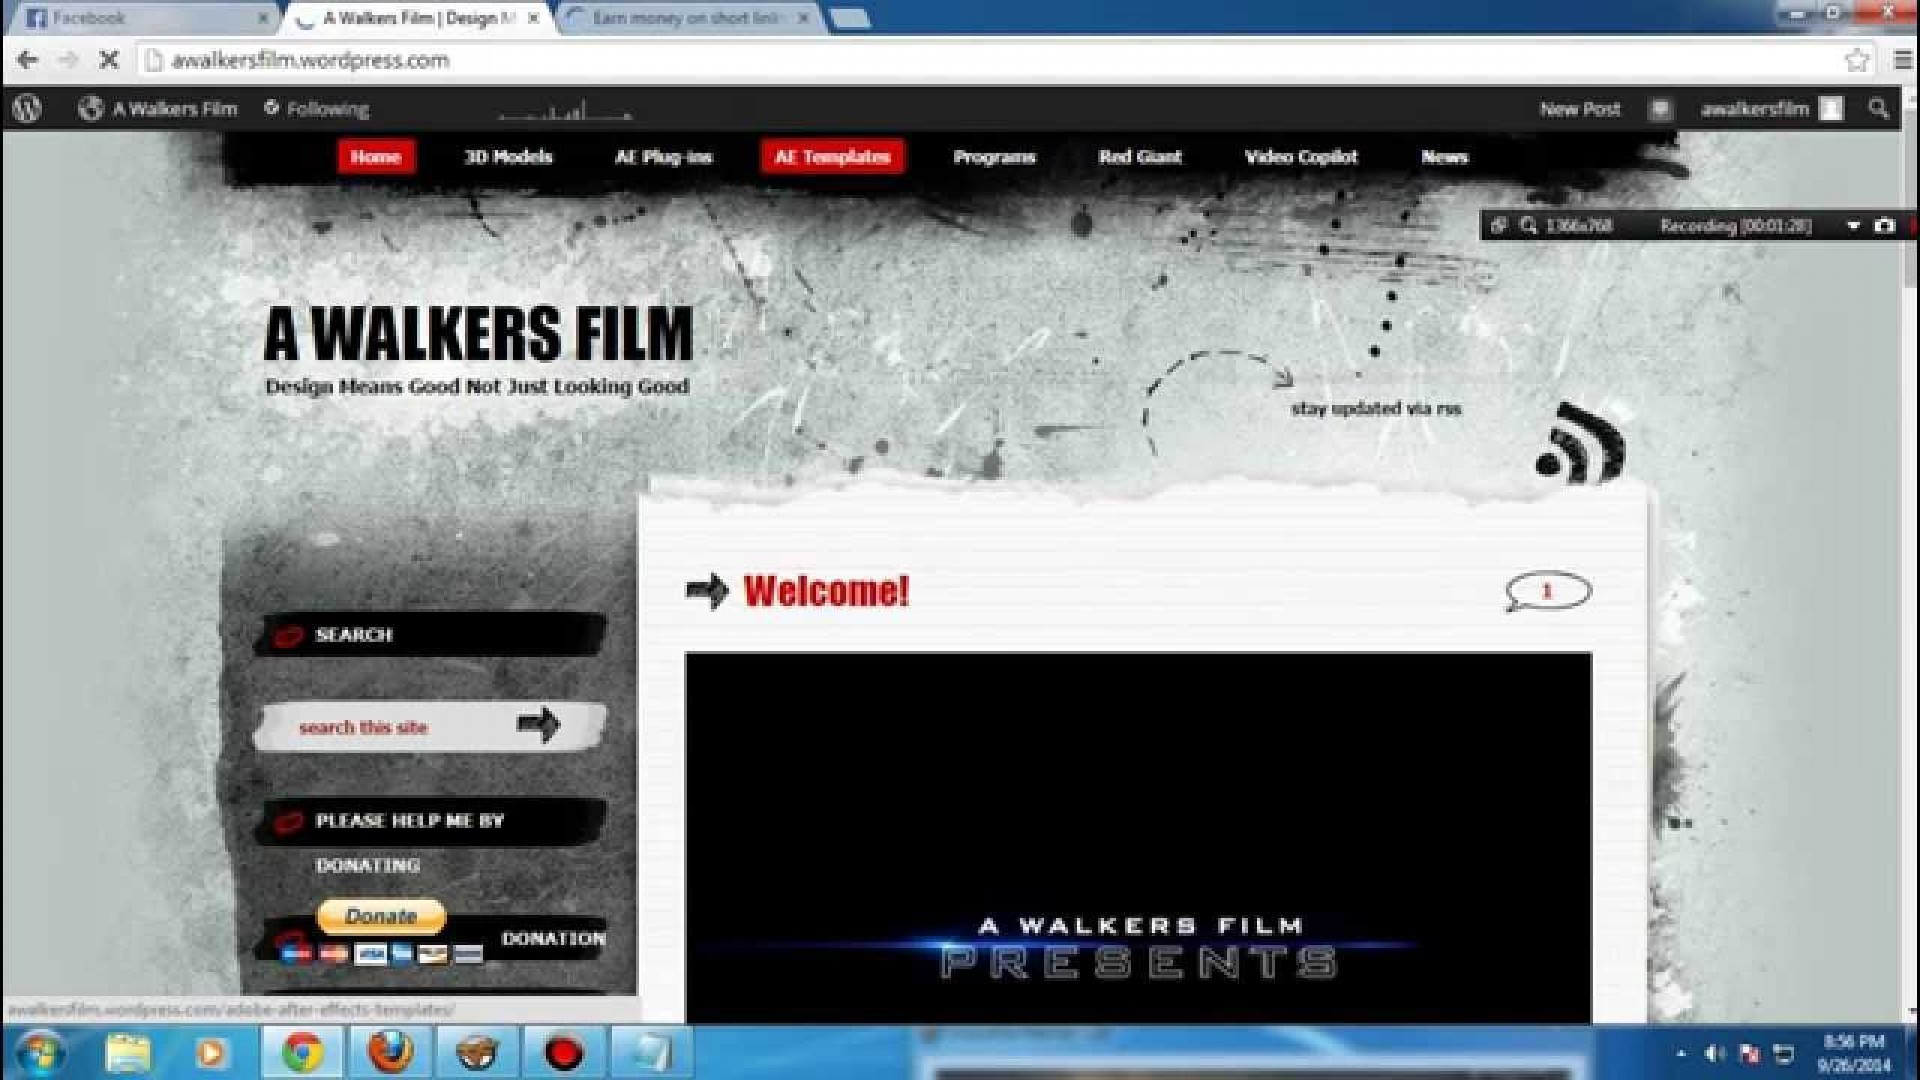 006 Unusual After Effect Template Torrent Highest Clarity 1920